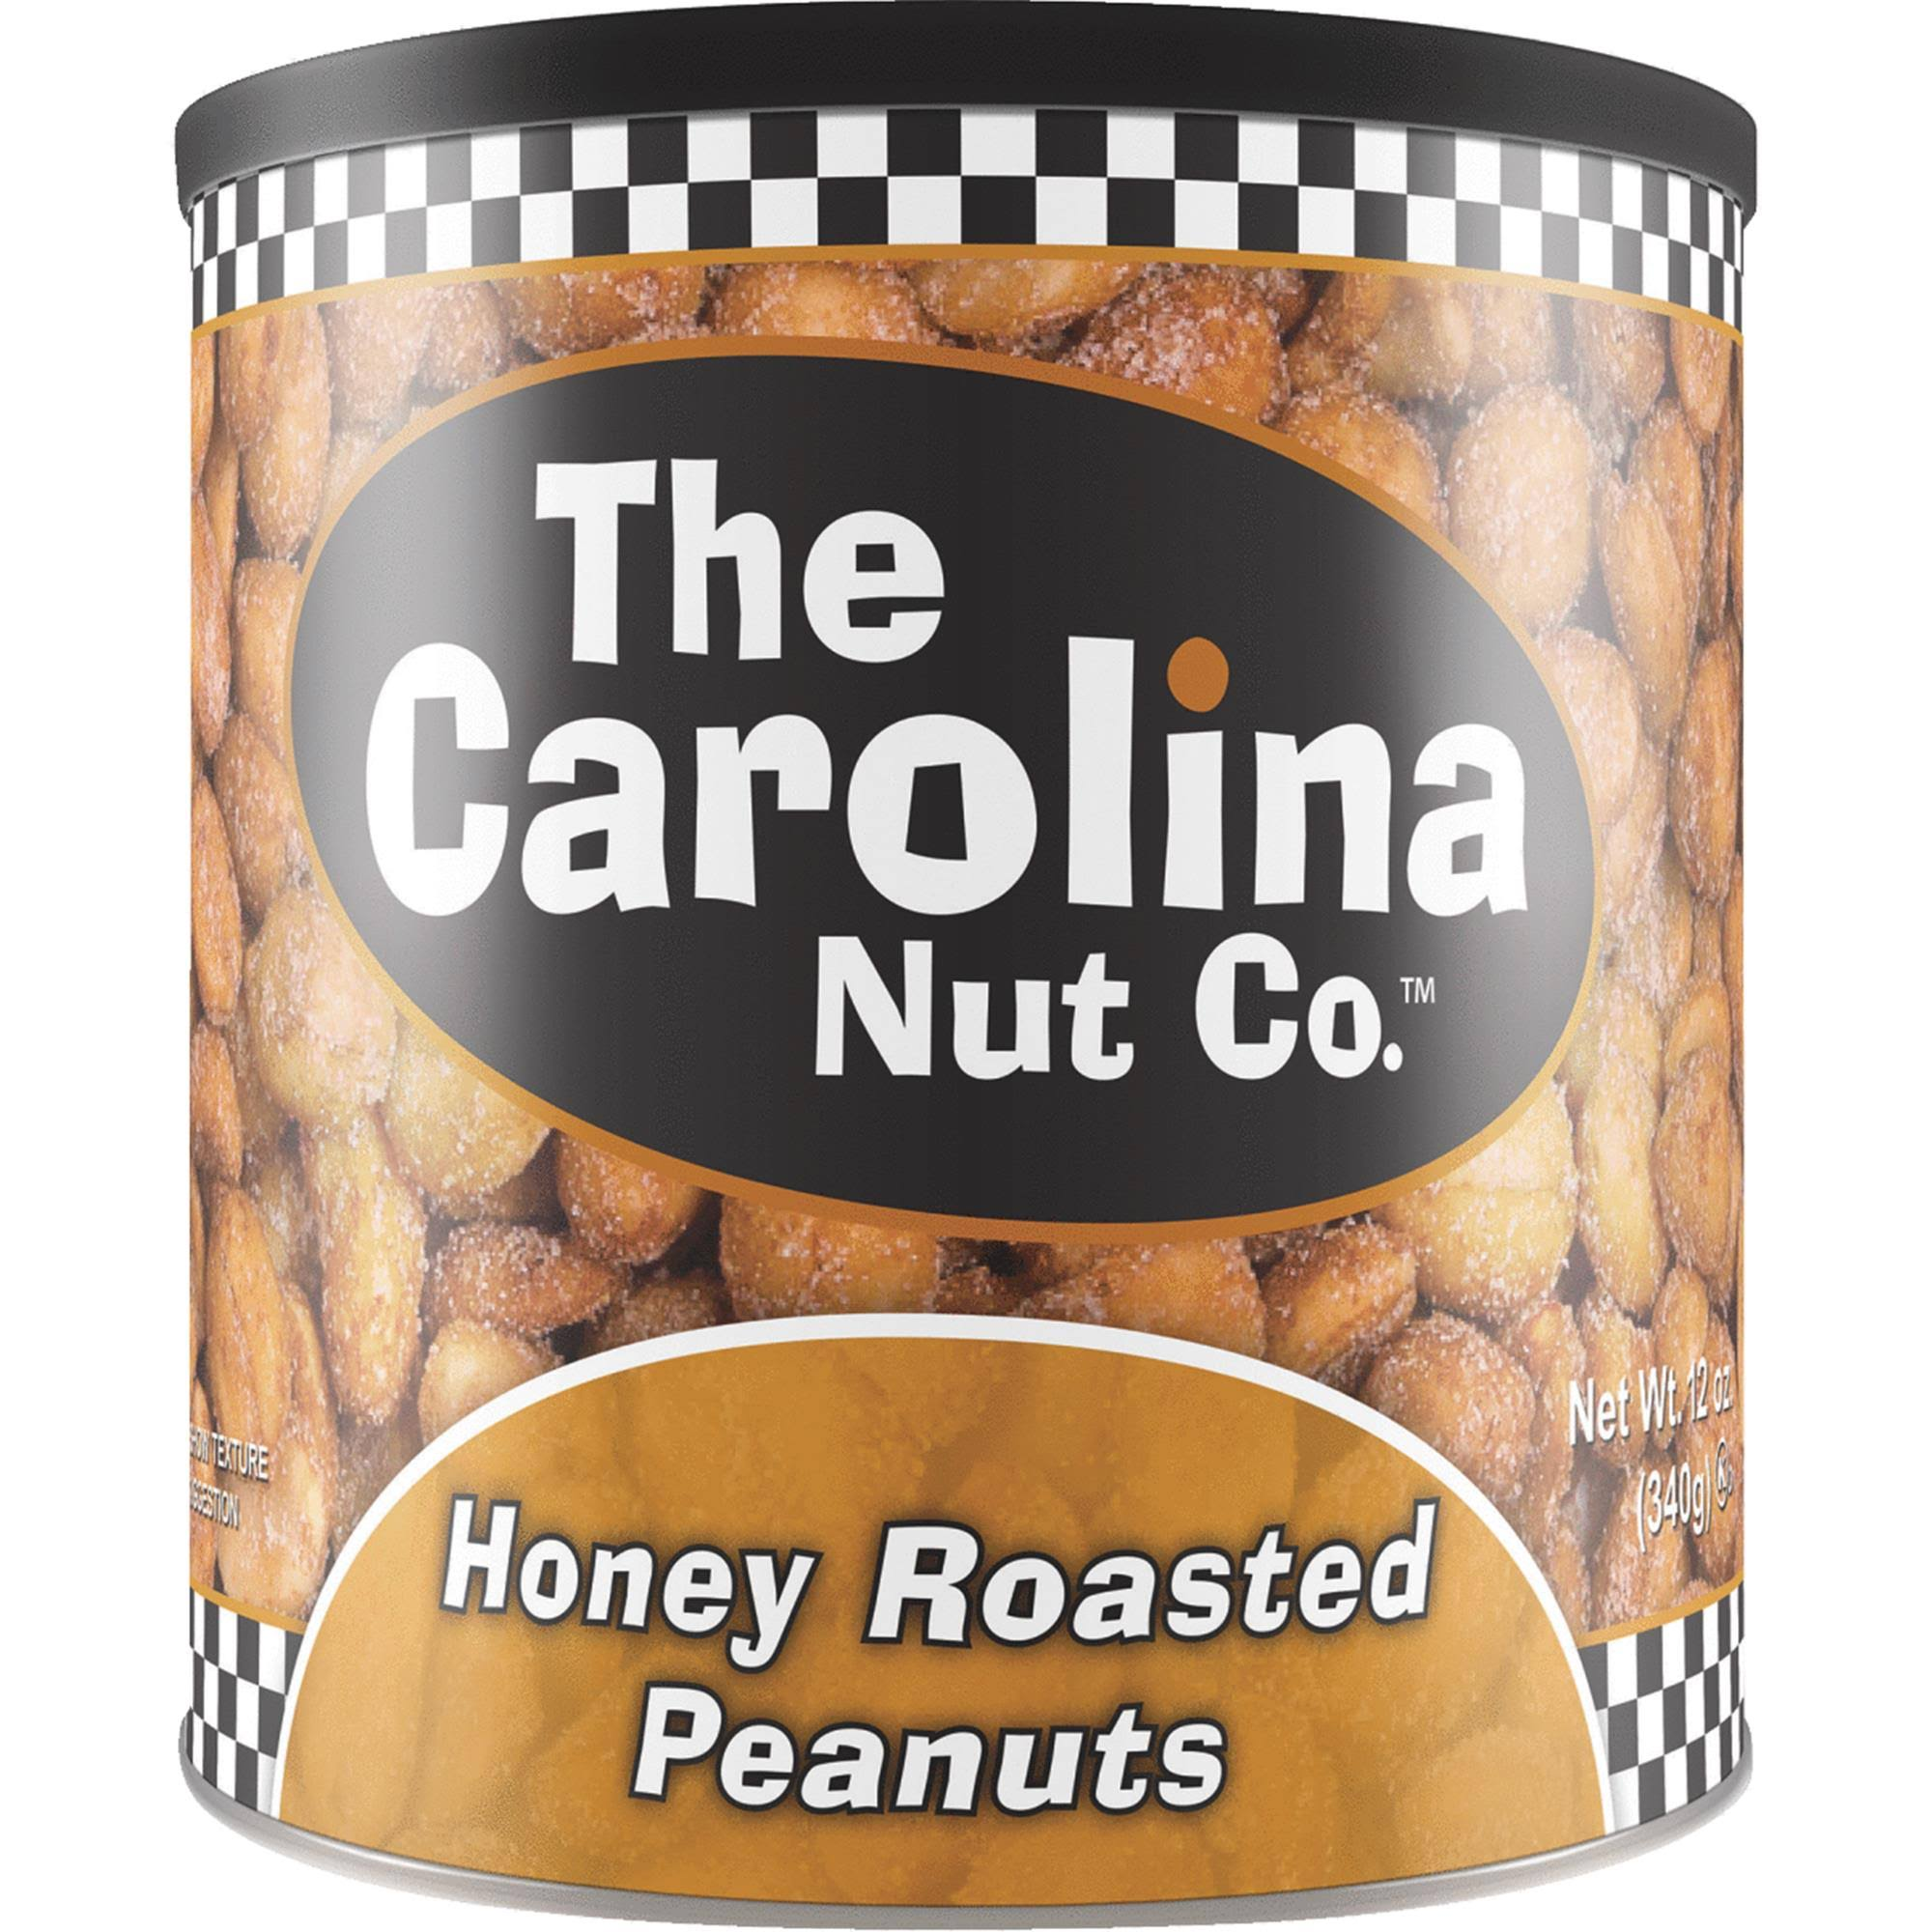 The Carolina Nut Co. Peanuts 12 Oz. (Pack of 6)